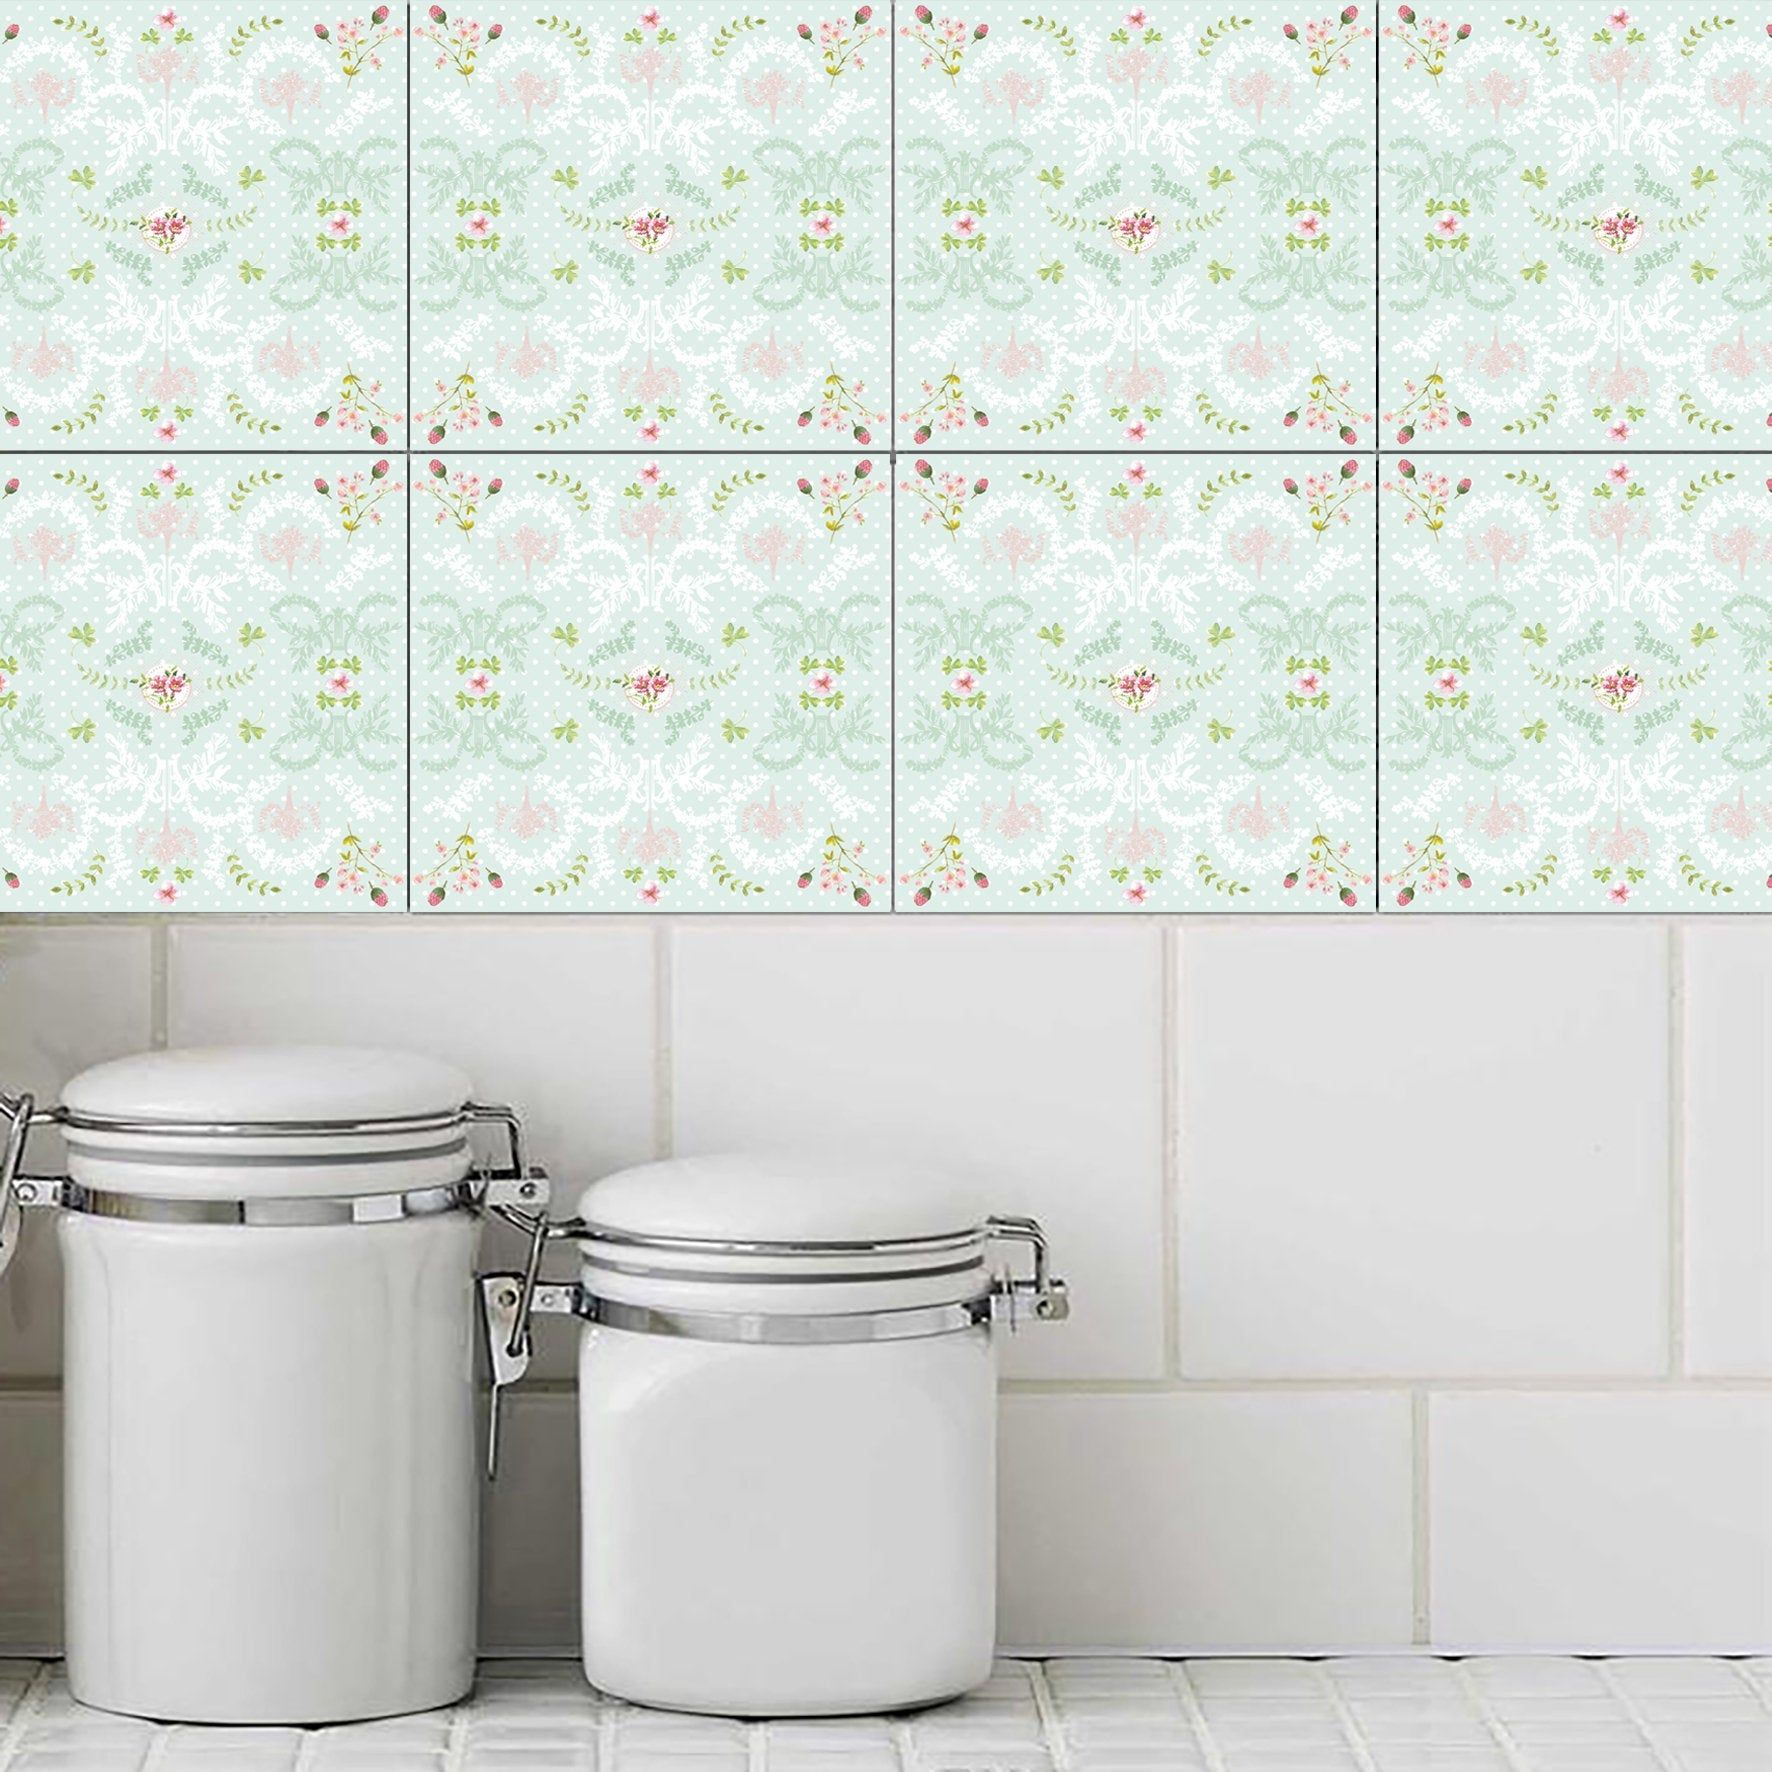 Mint Green Wall Tile Stickers Waterproof Tile Decals Set Of 14